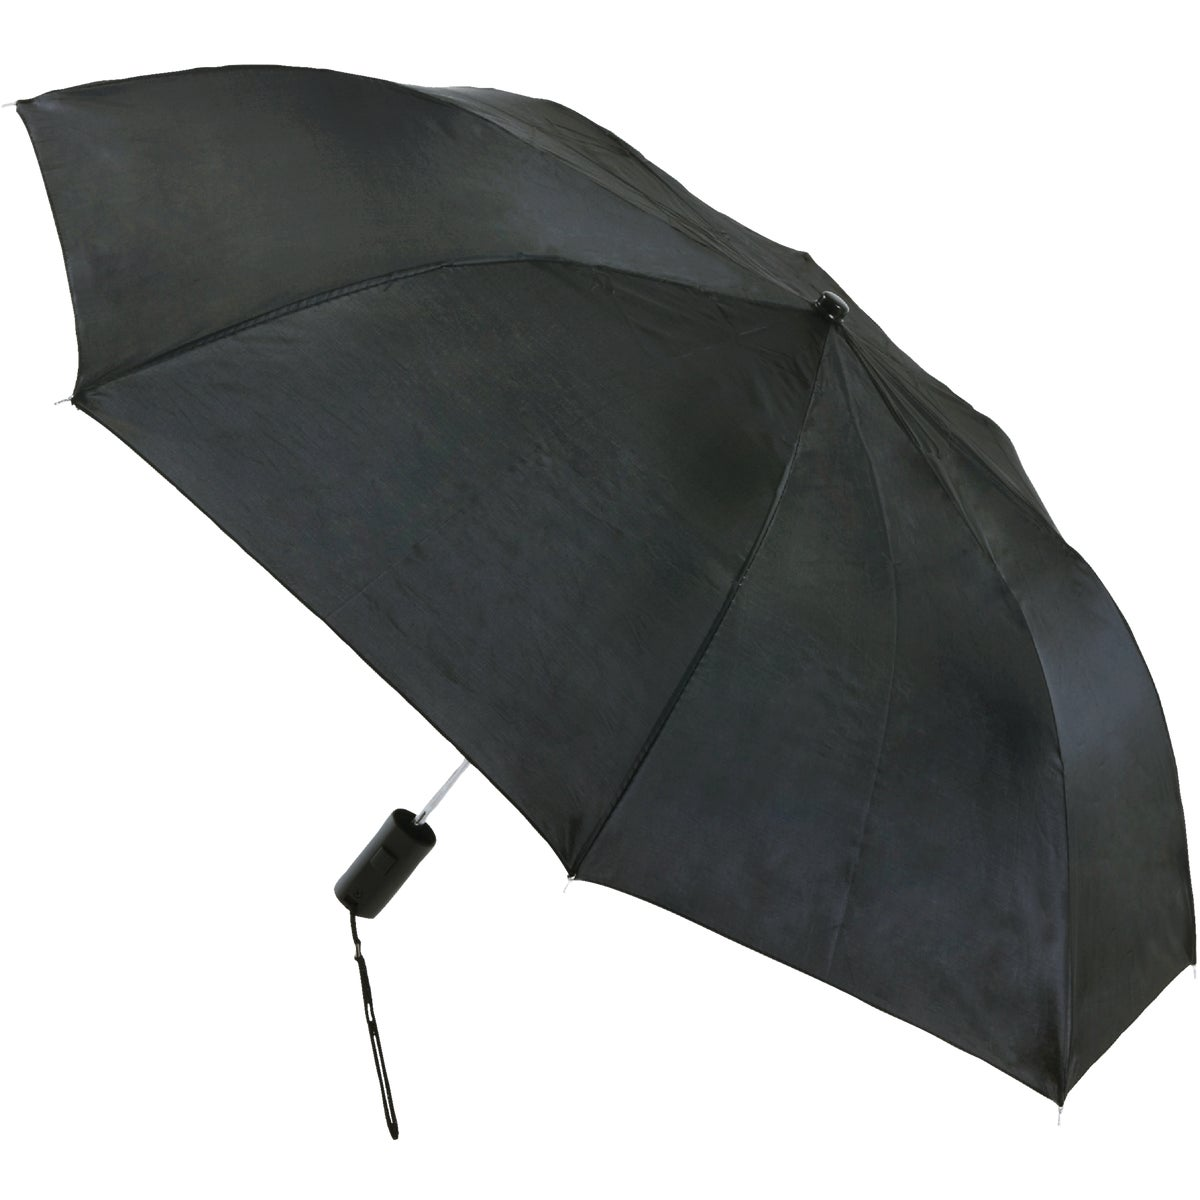 42 IN AUTOFOLD UMBRELLA - 1101 by Chaby International